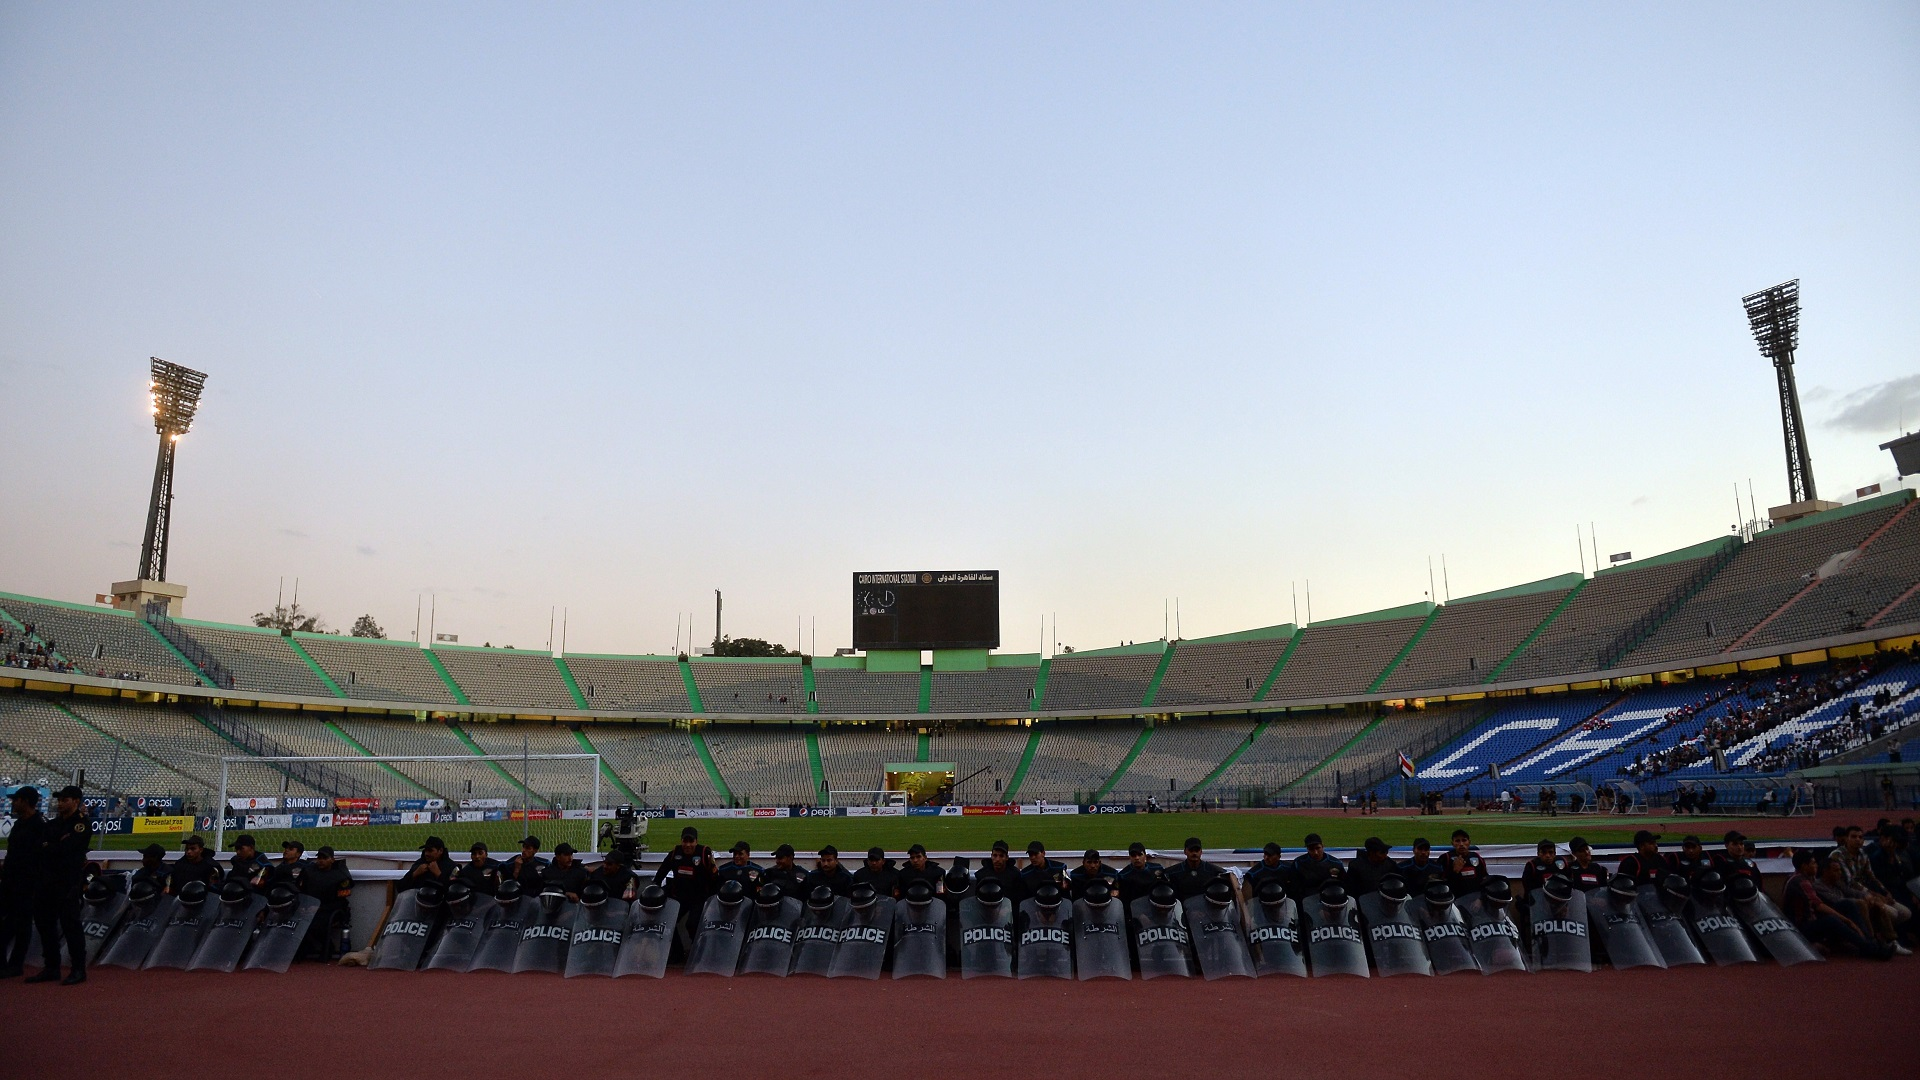 Cairo International Stadium in the Egypt